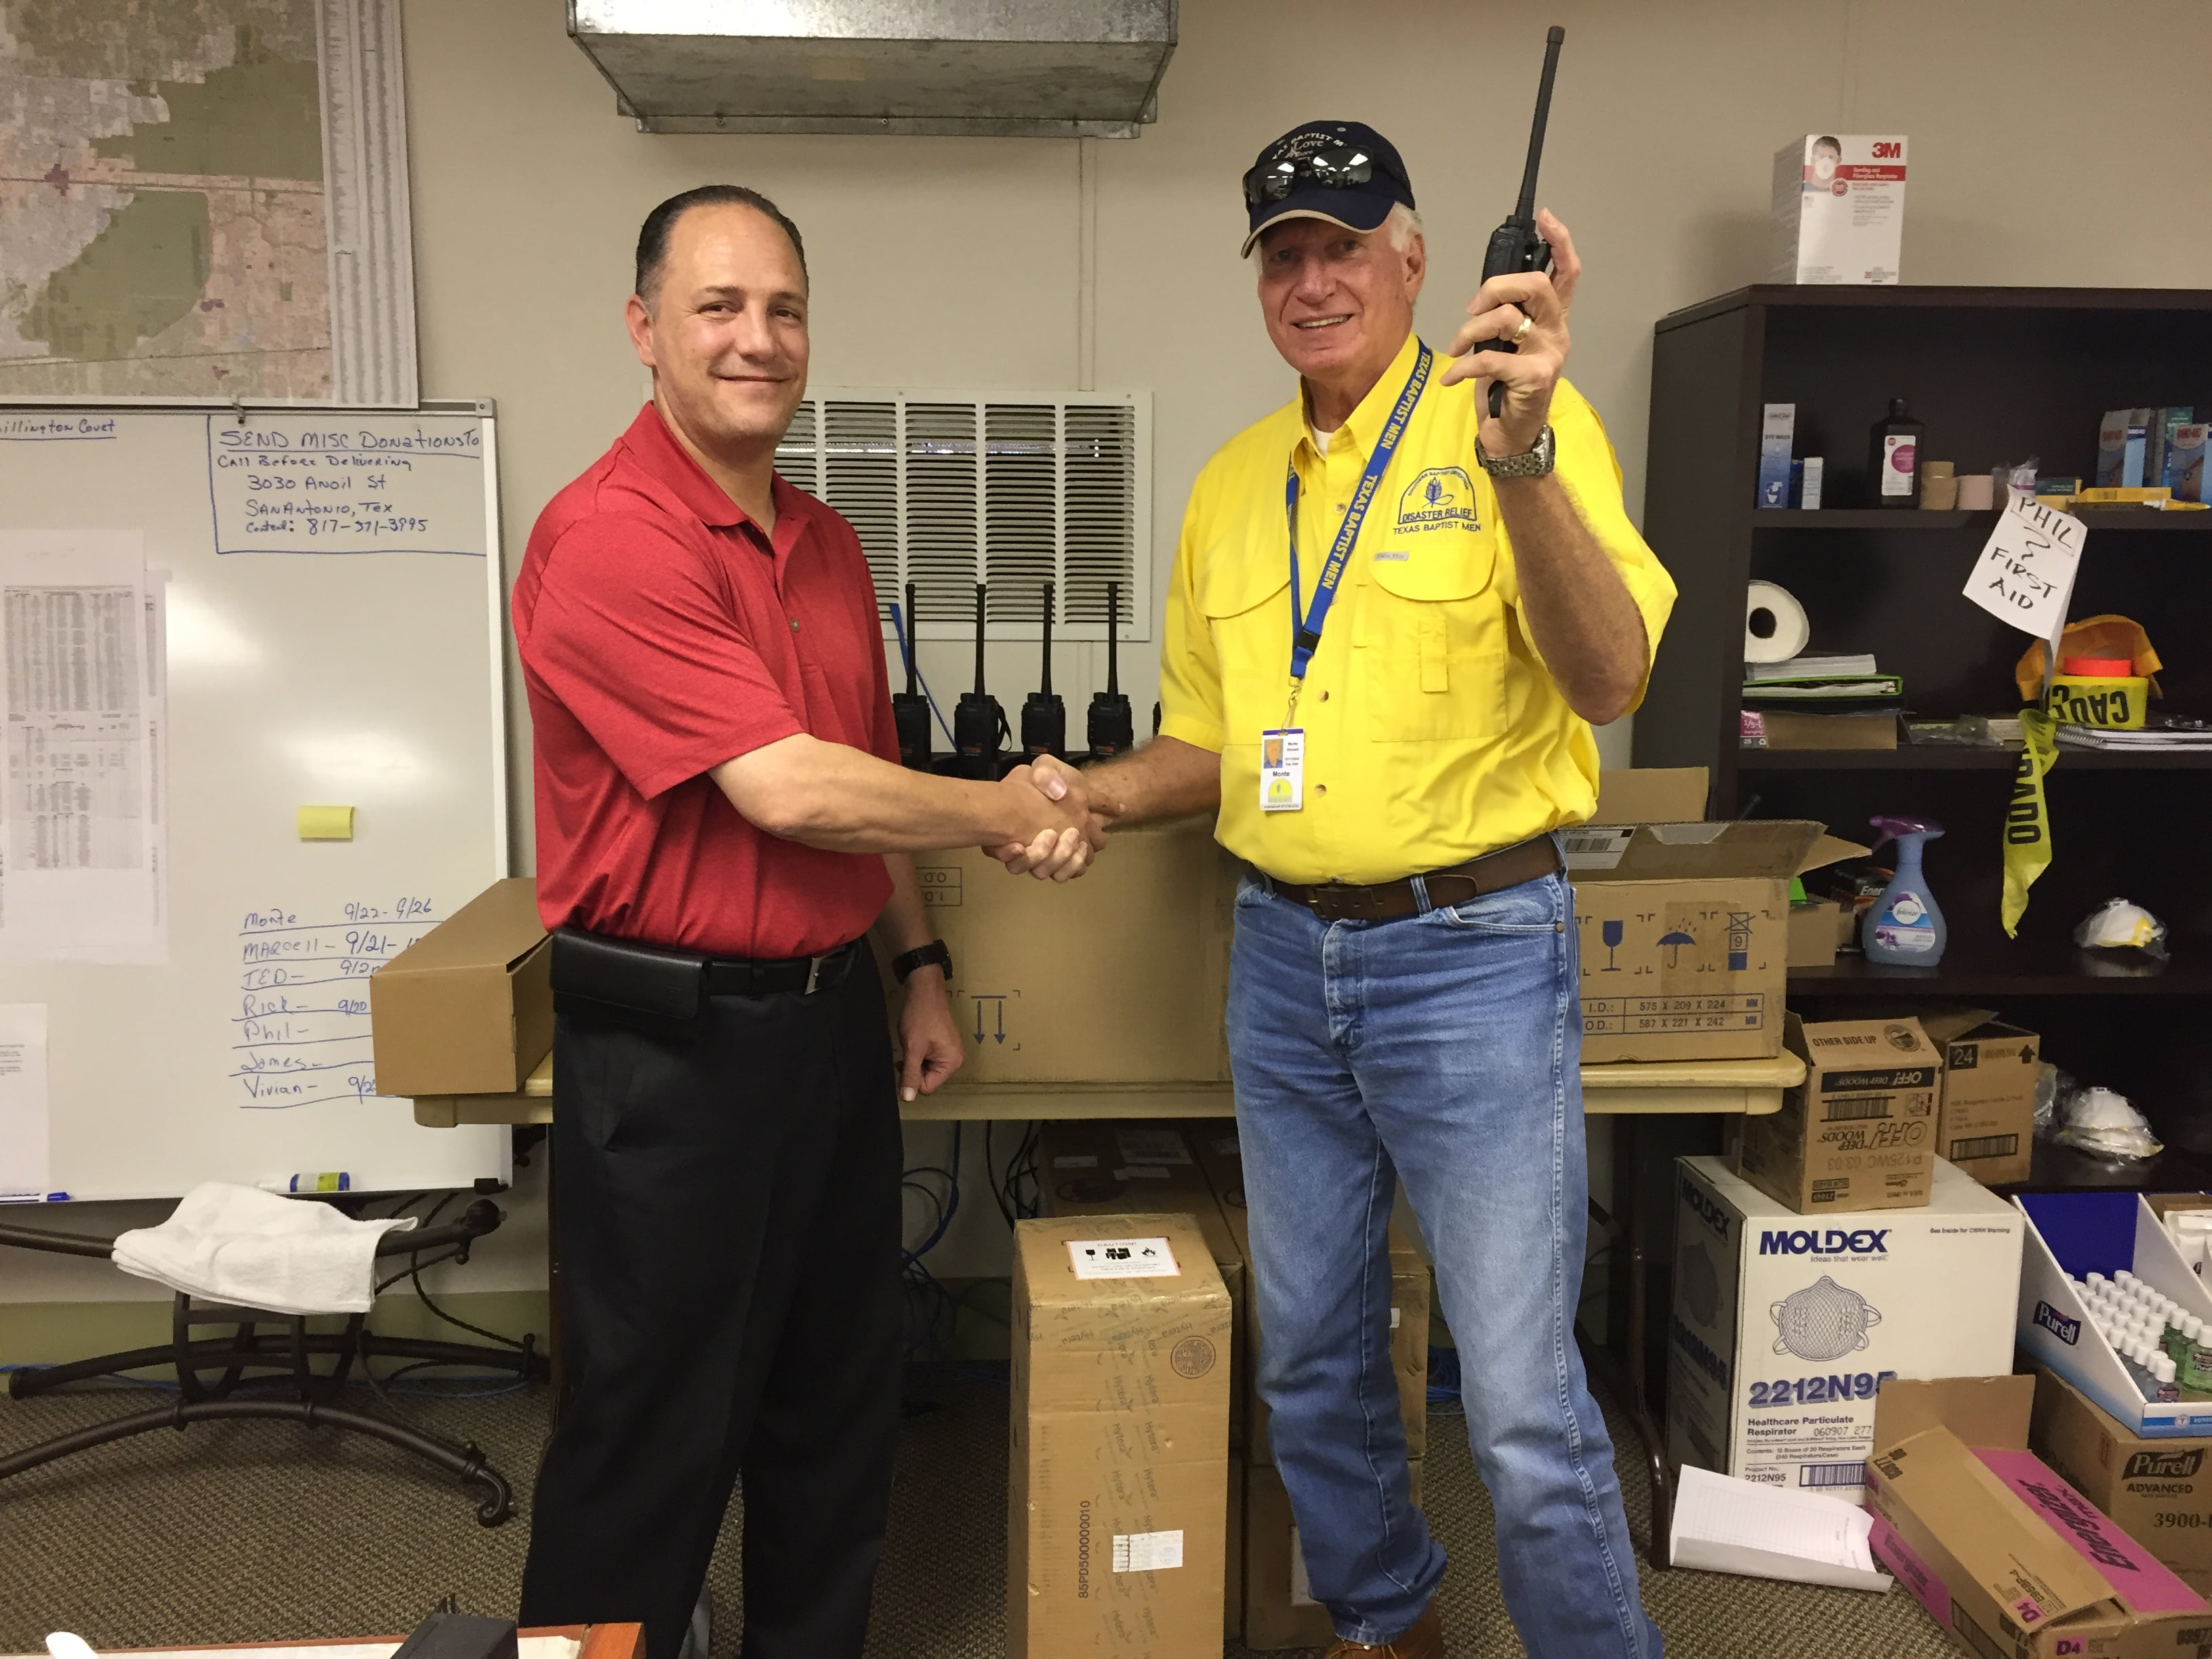 Hytera America, Inc. and Voceon Digital Radio Communications Provide Two-Way Radios to National Relief Organization Texas Baptist Men